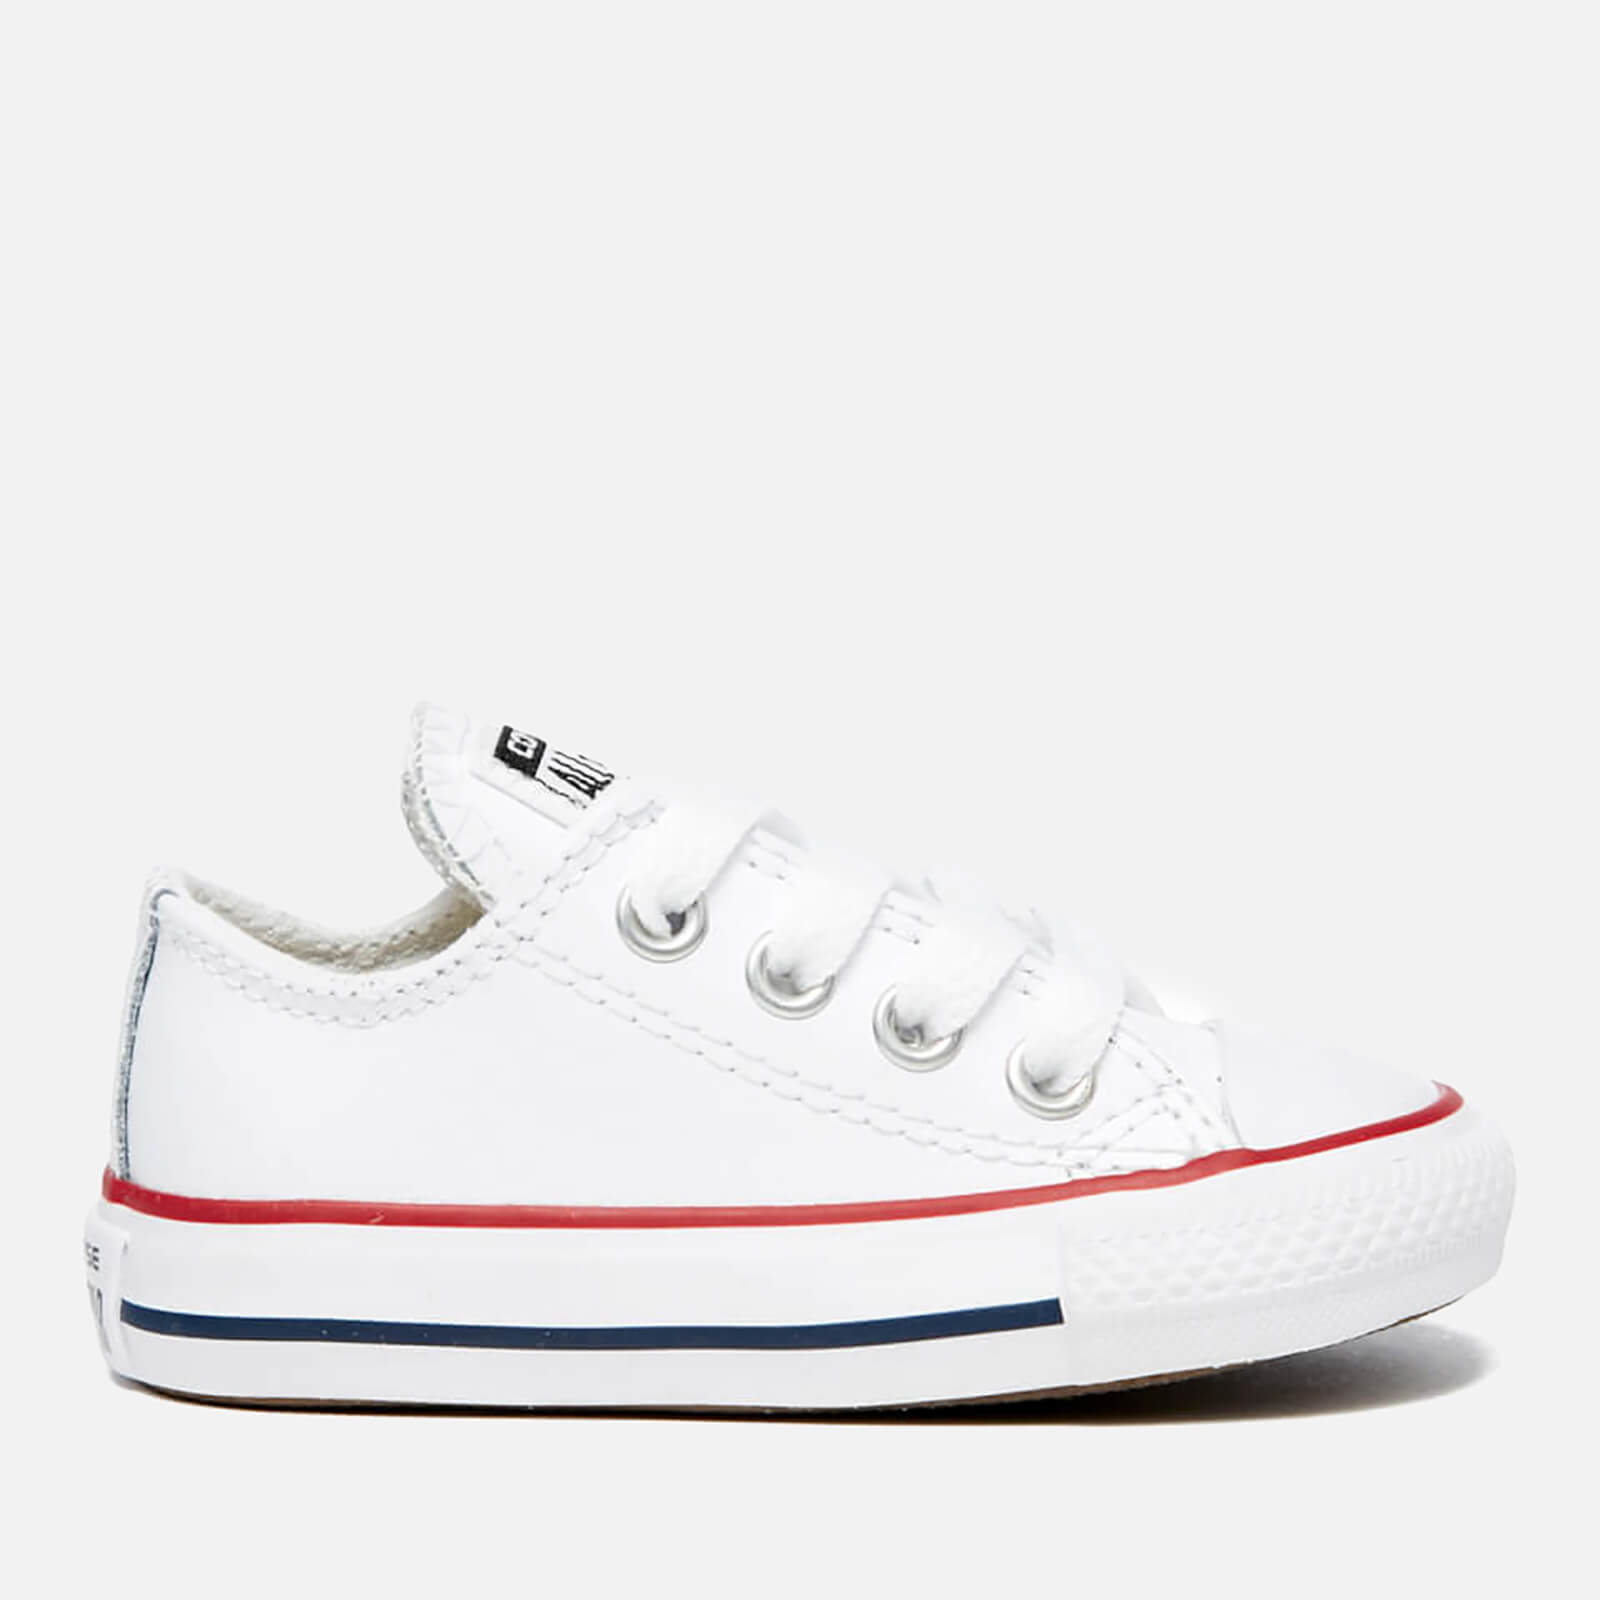 ff9473a29e35 Converse Toddlers  Chuck Taylor All Star Ox Trainers - White Garnet Navy  Junior Clothing